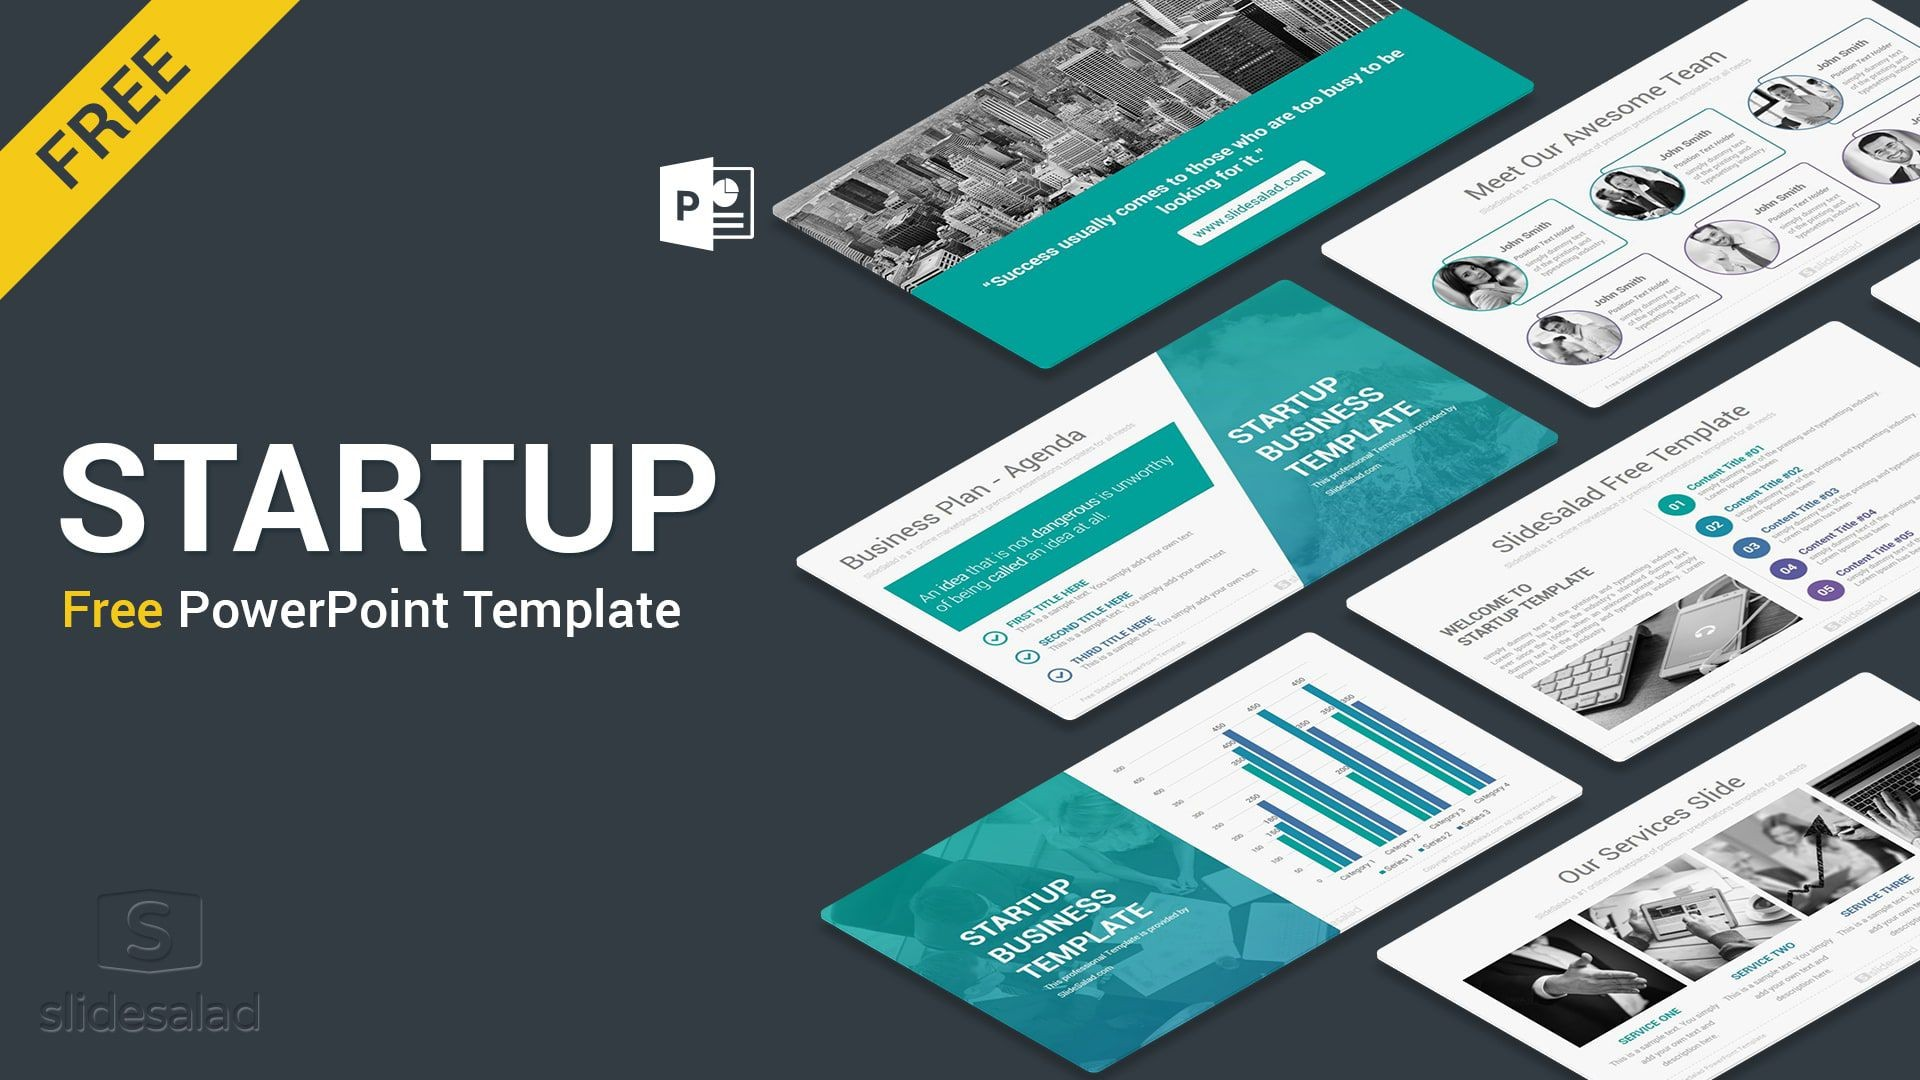 009 Fascinating Free Busines Proposal Template Powerpoint Picture  Best Plan Ppt 2020 Sale1920